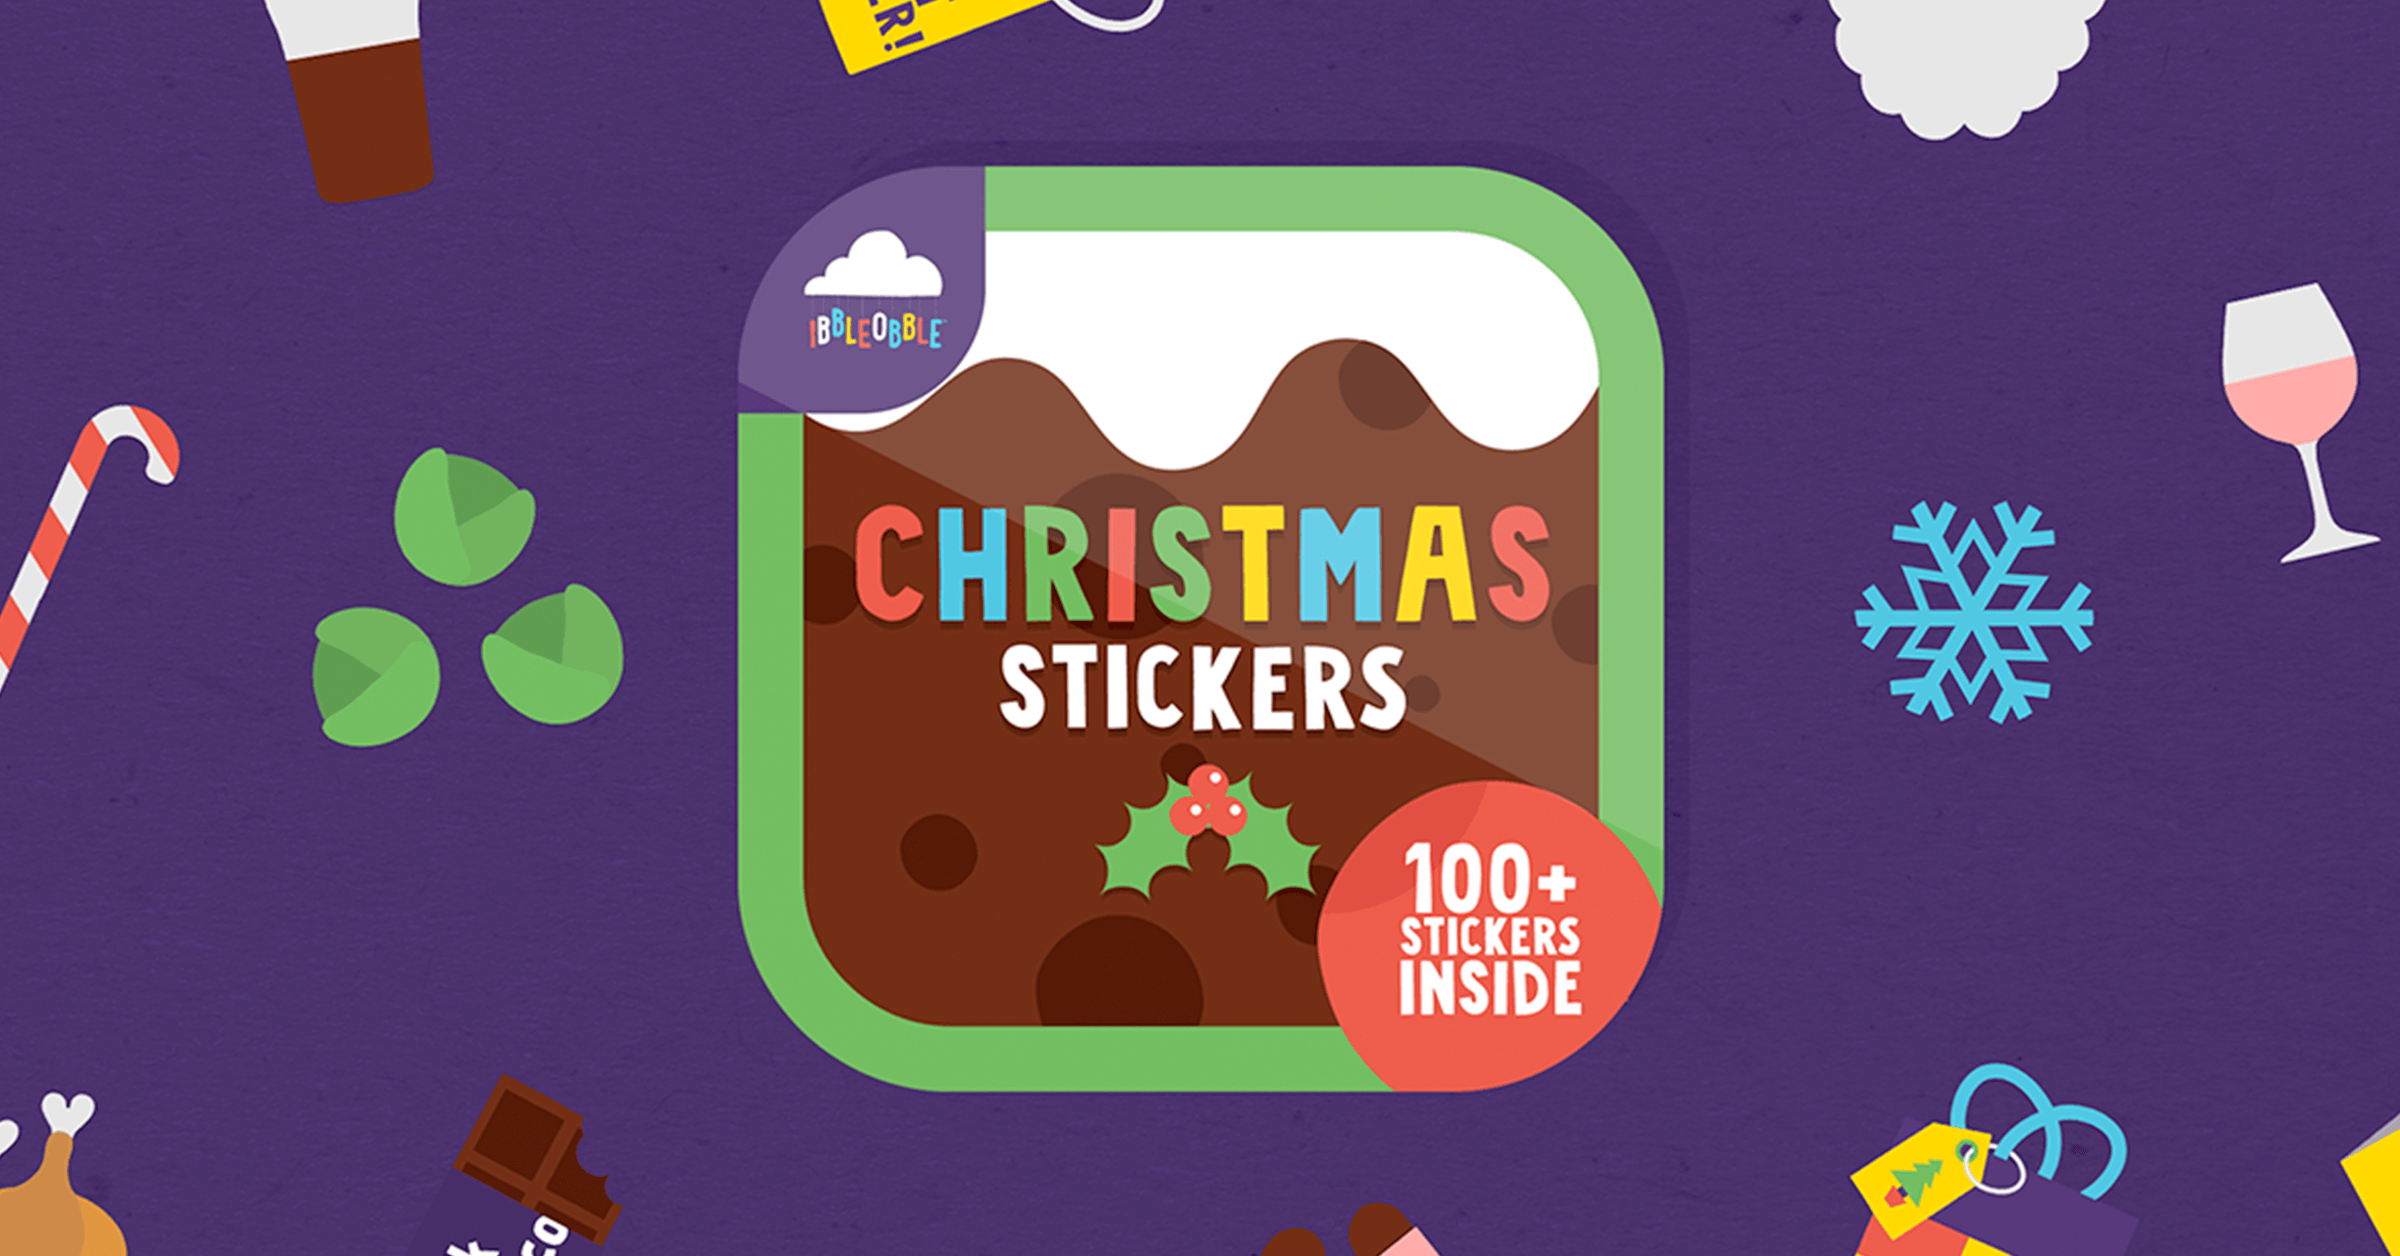 Hip Hip Hooray for Ibbleobble Christmas Stickers!